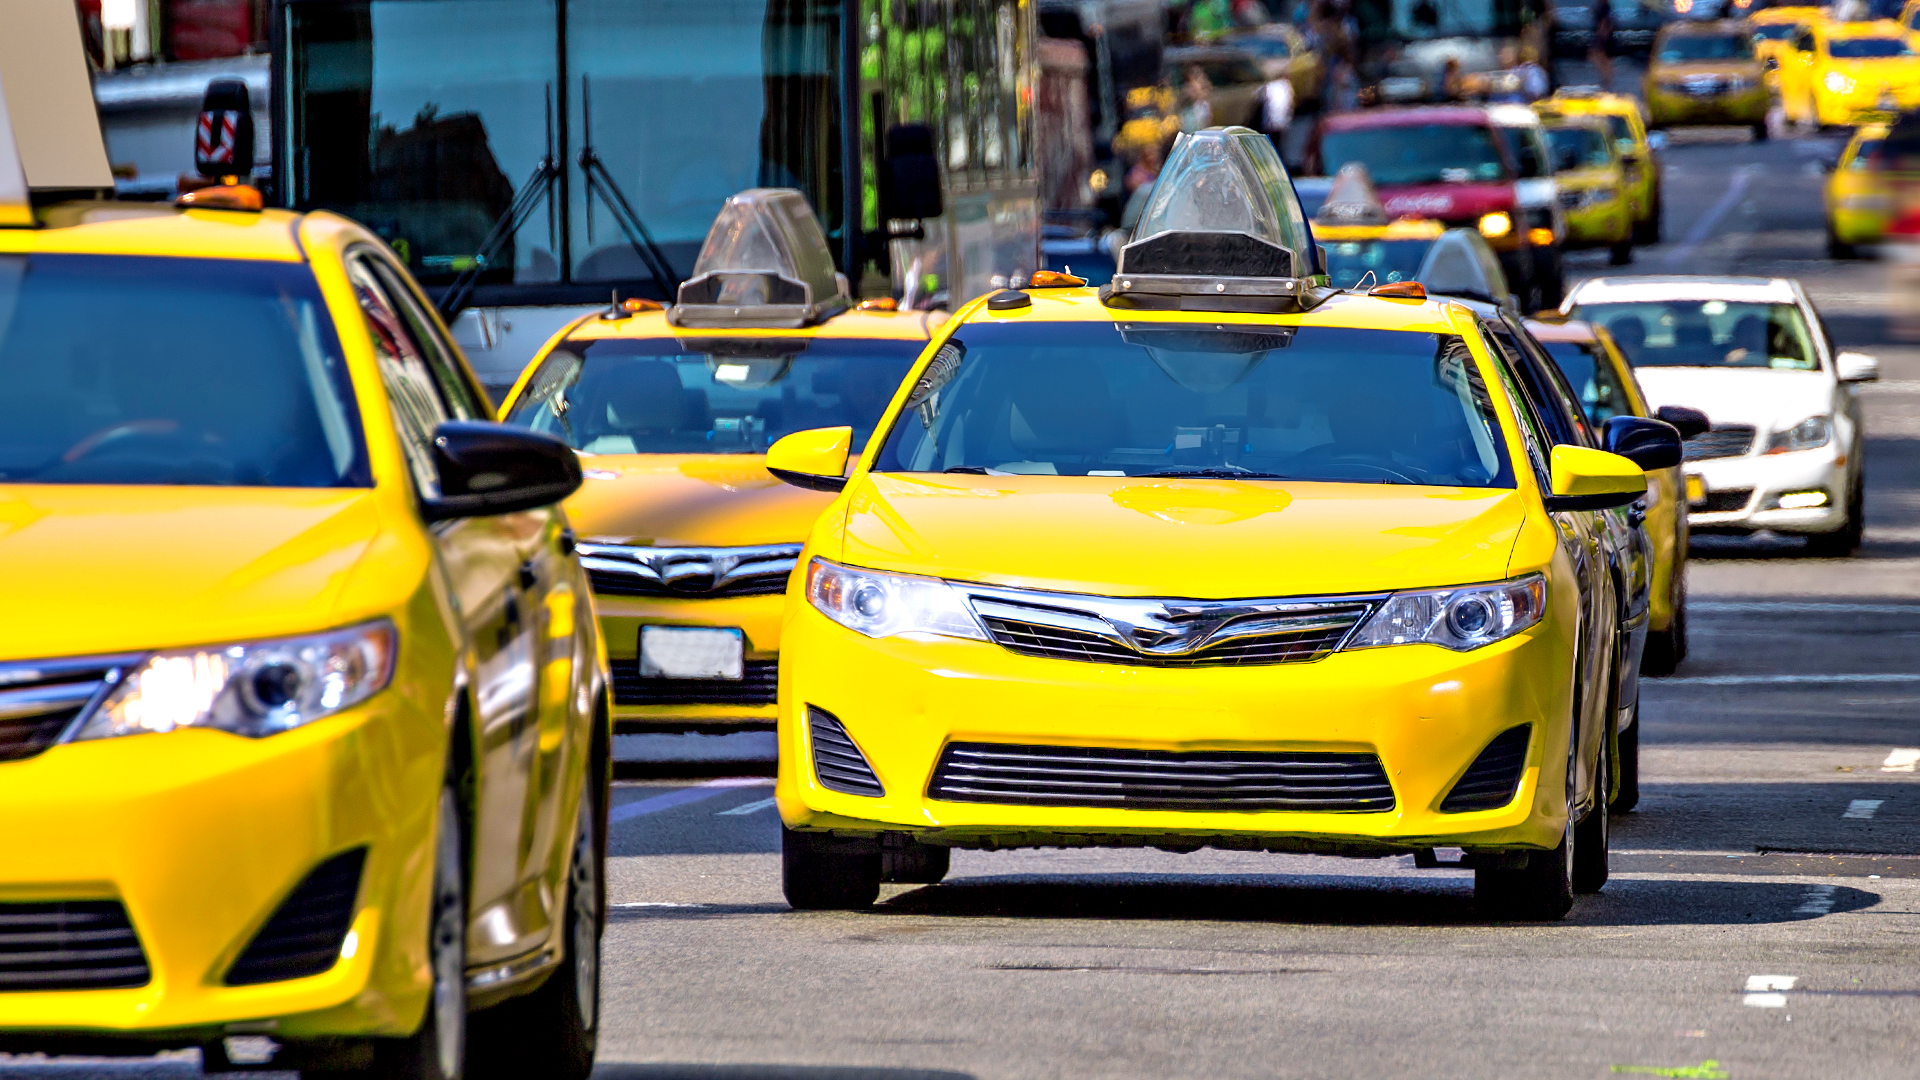 COVID-19 HELP: BC Reduces Annual License Fee For Taxi Industry